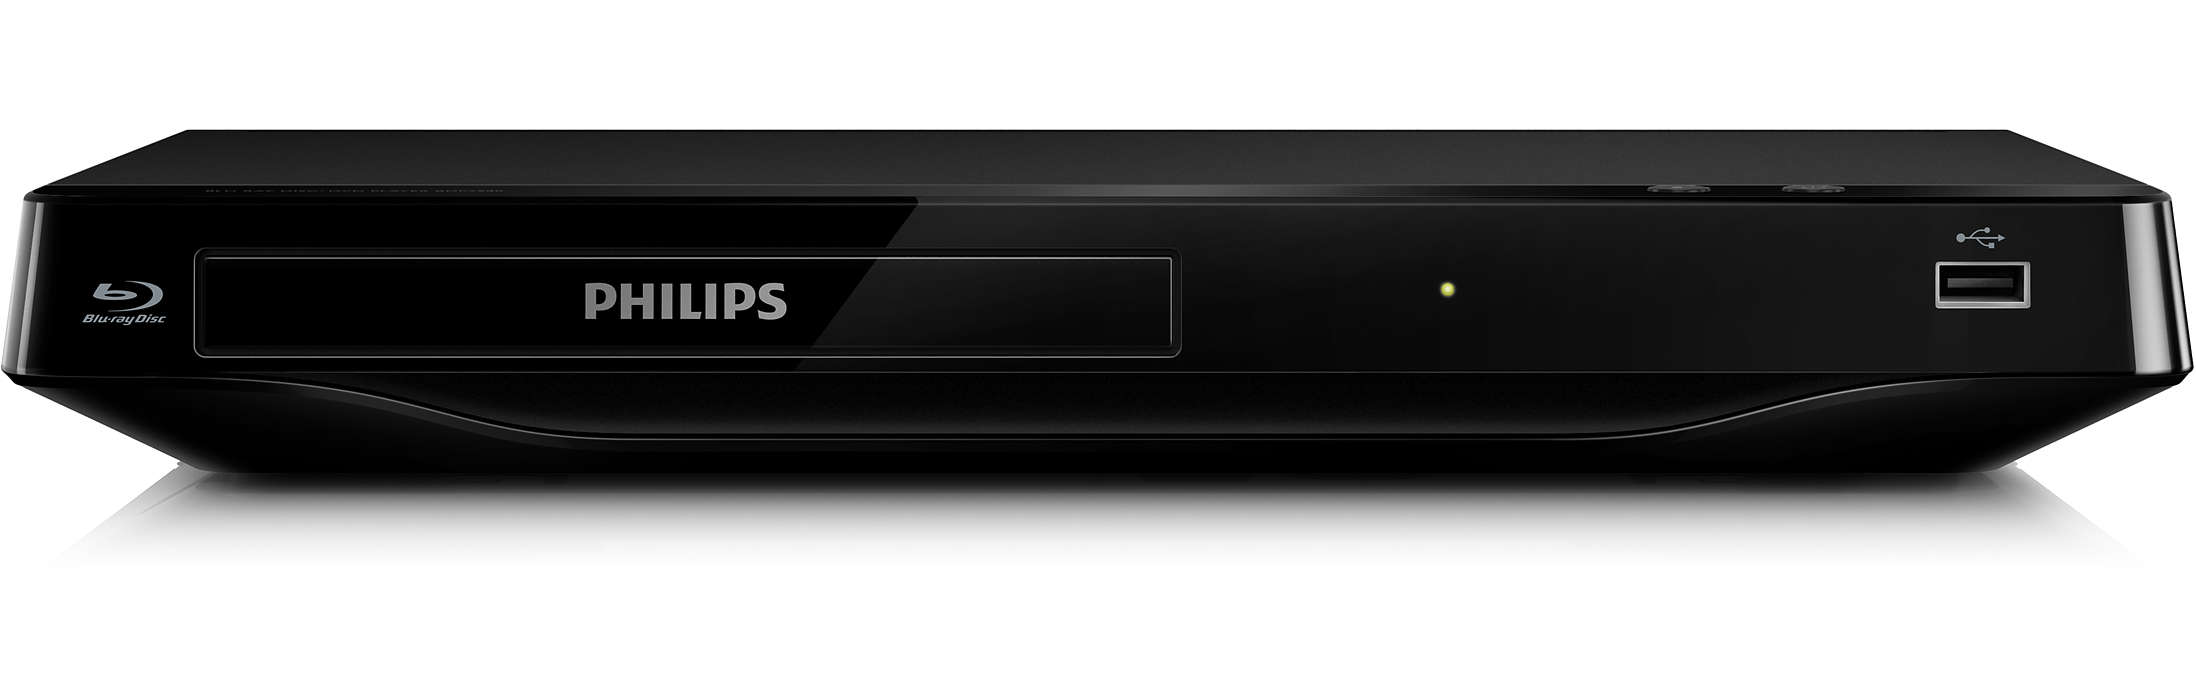 blu ray disc dvd player bdp2900 98 philips